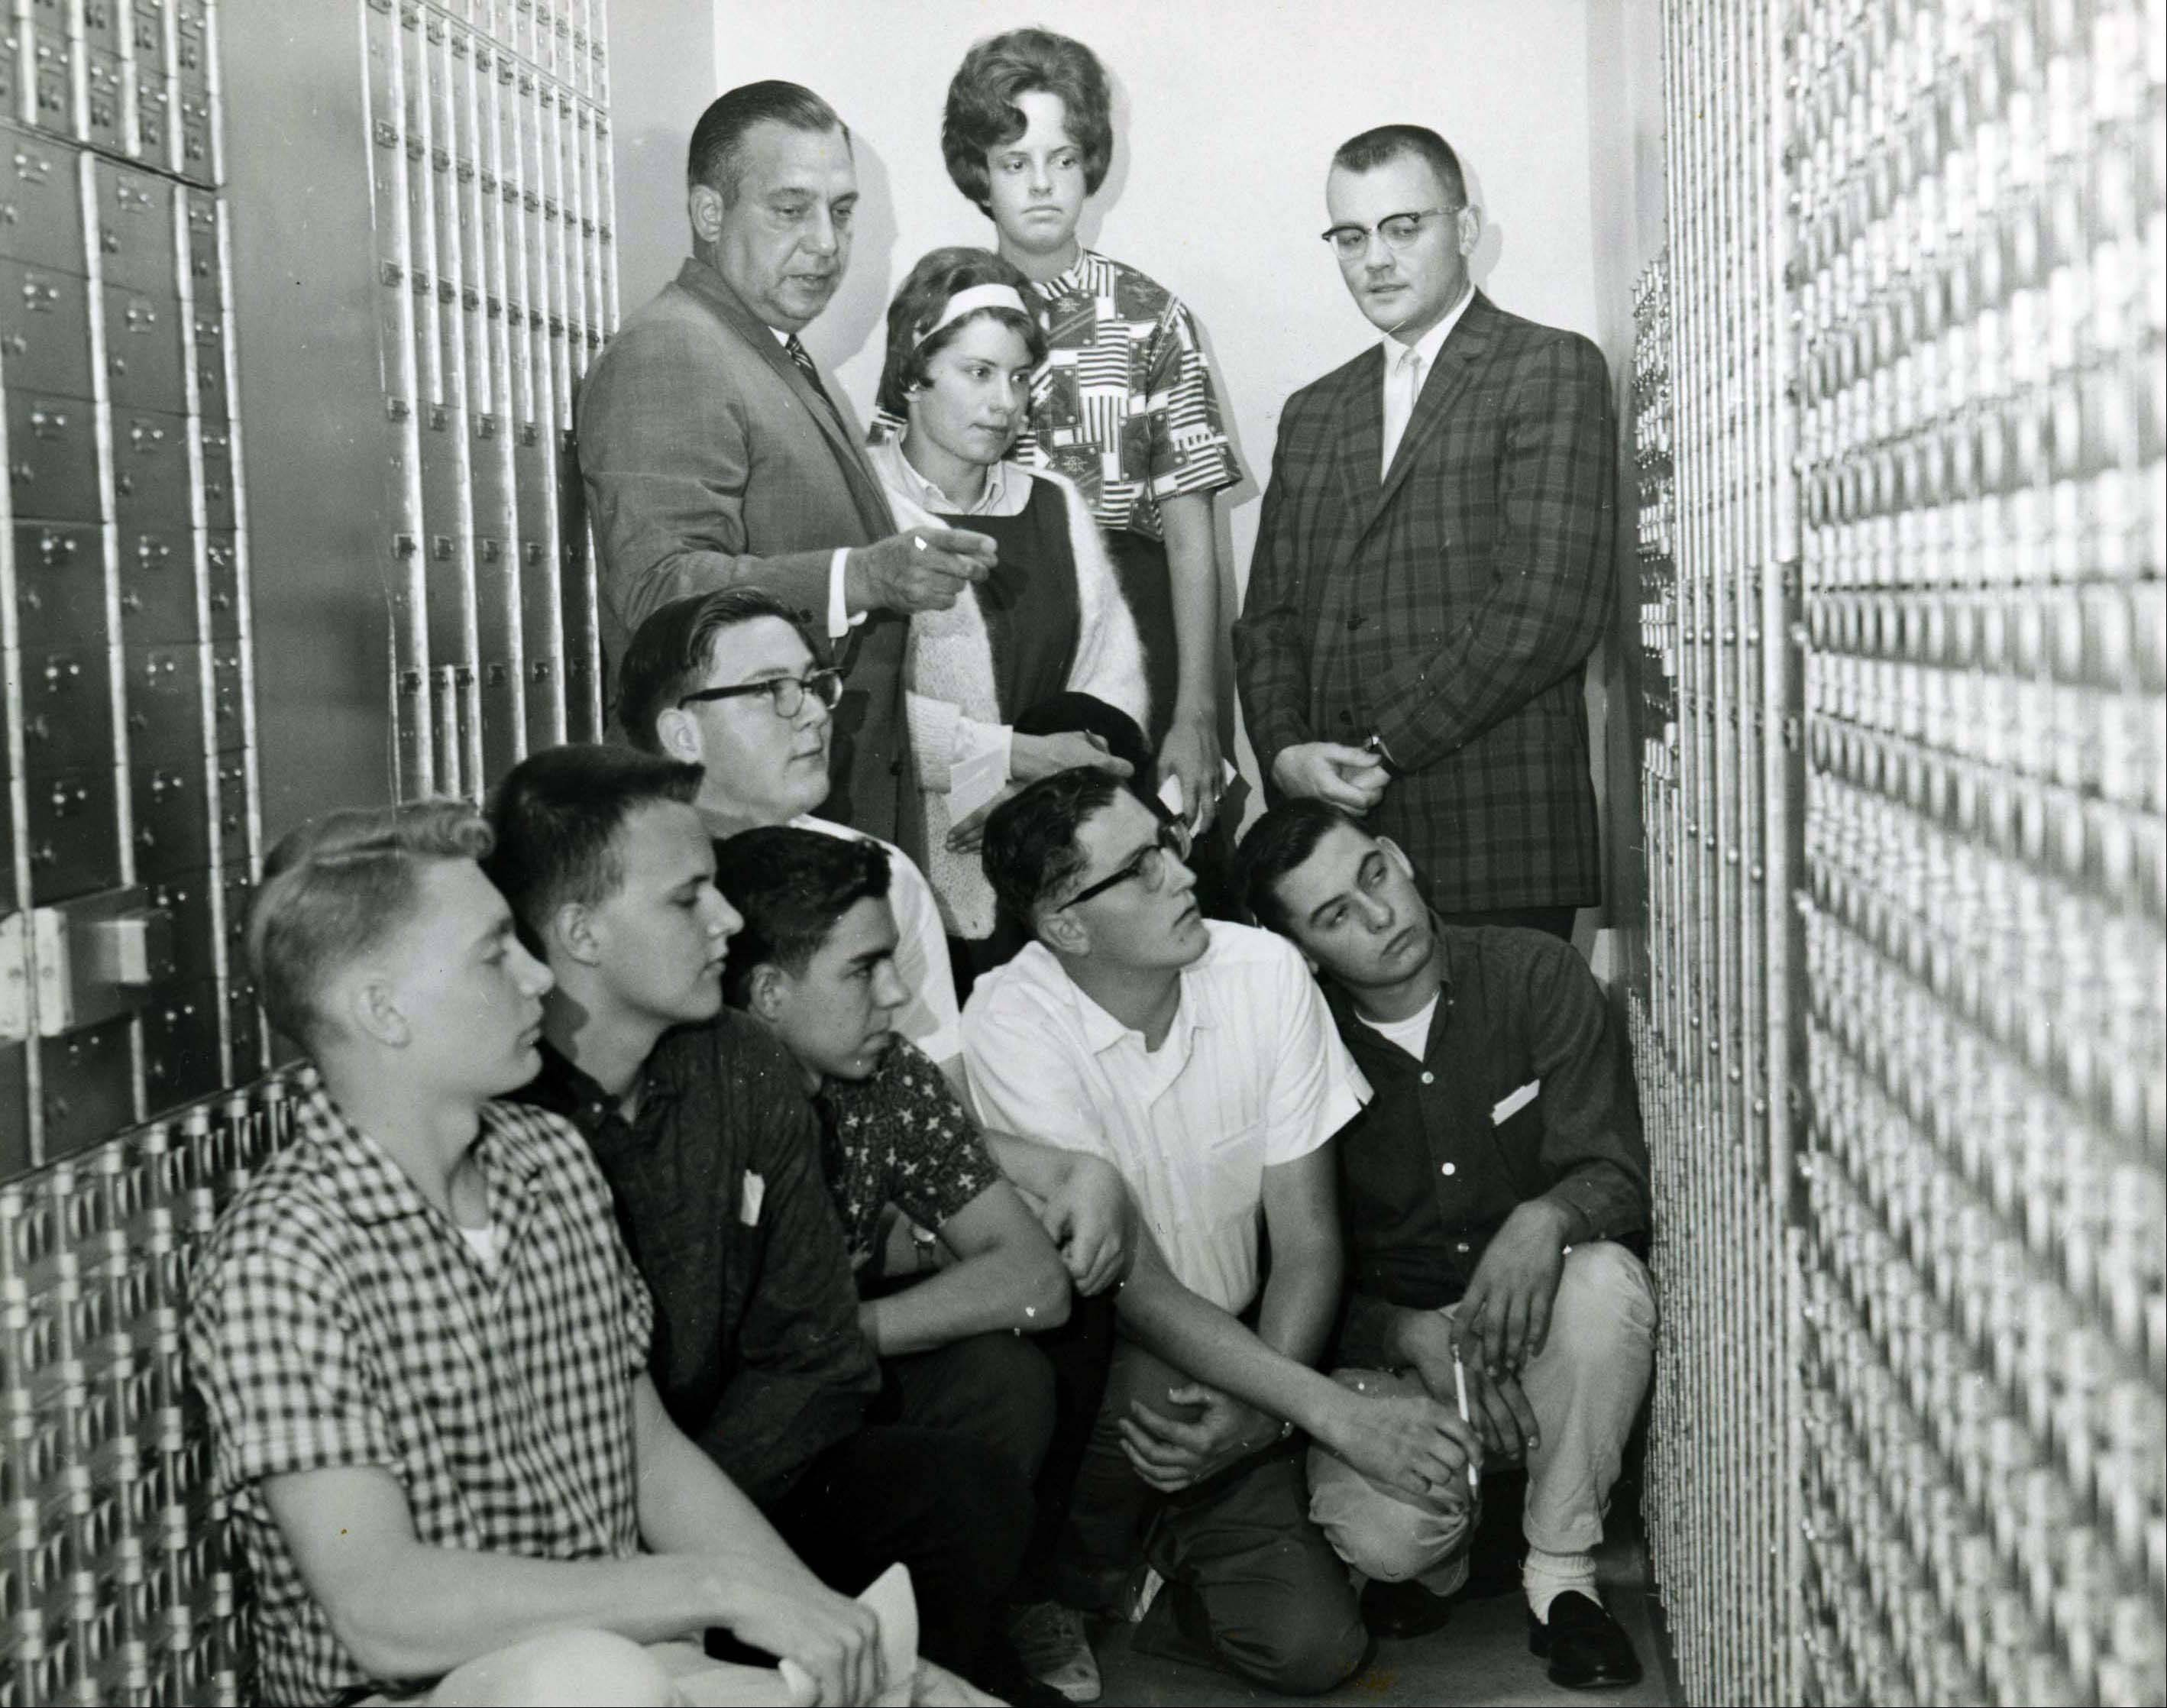 These students seem quite interested in learning about safety deposit boxes, but who are they?